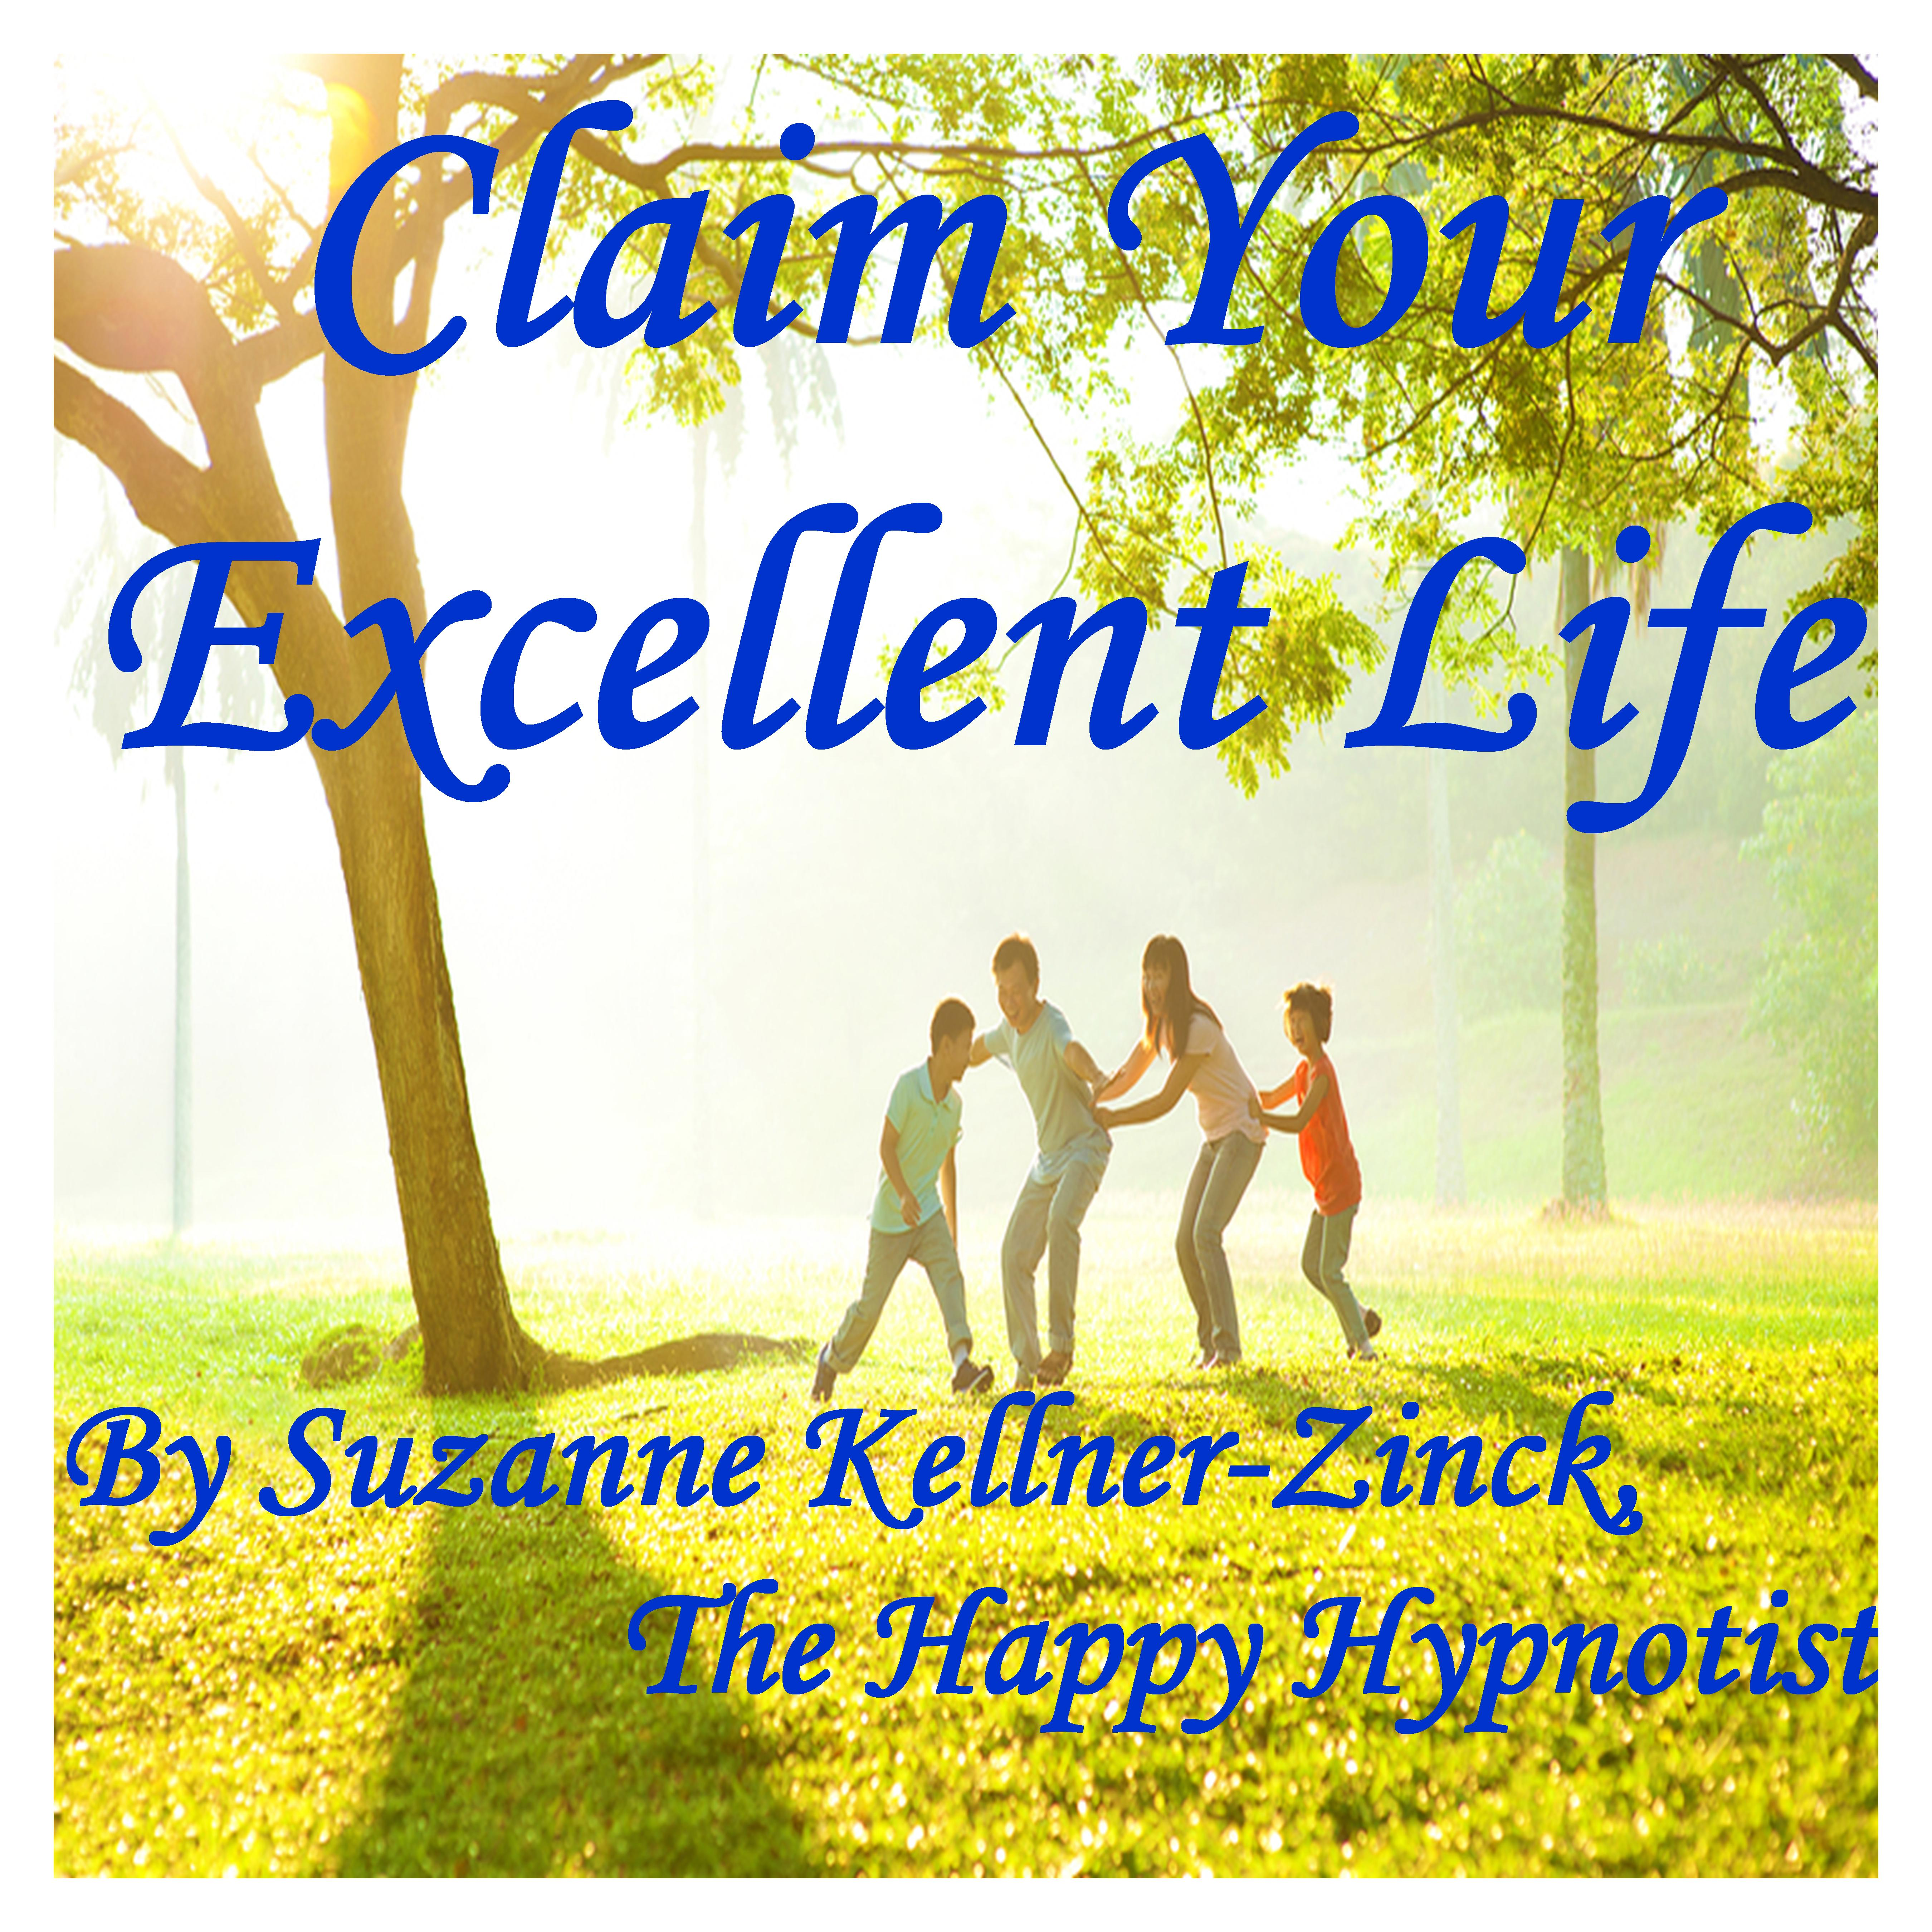 042:How Do You Know You Are Living an Inspired Life?